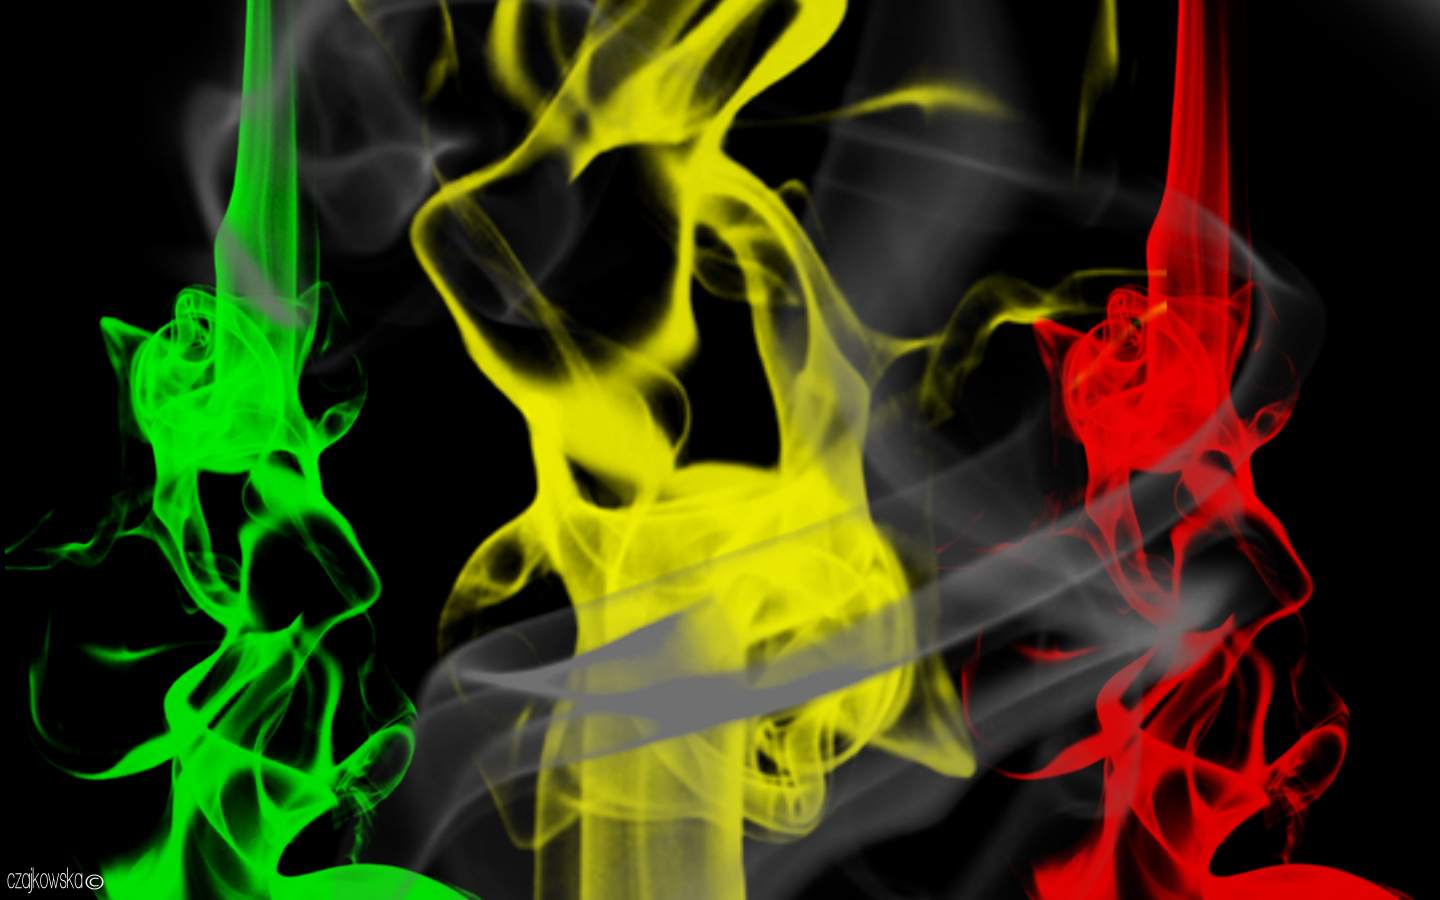 Wallpaper iphone rasta - Free Rasta Wallpapers 4 Wallpapers